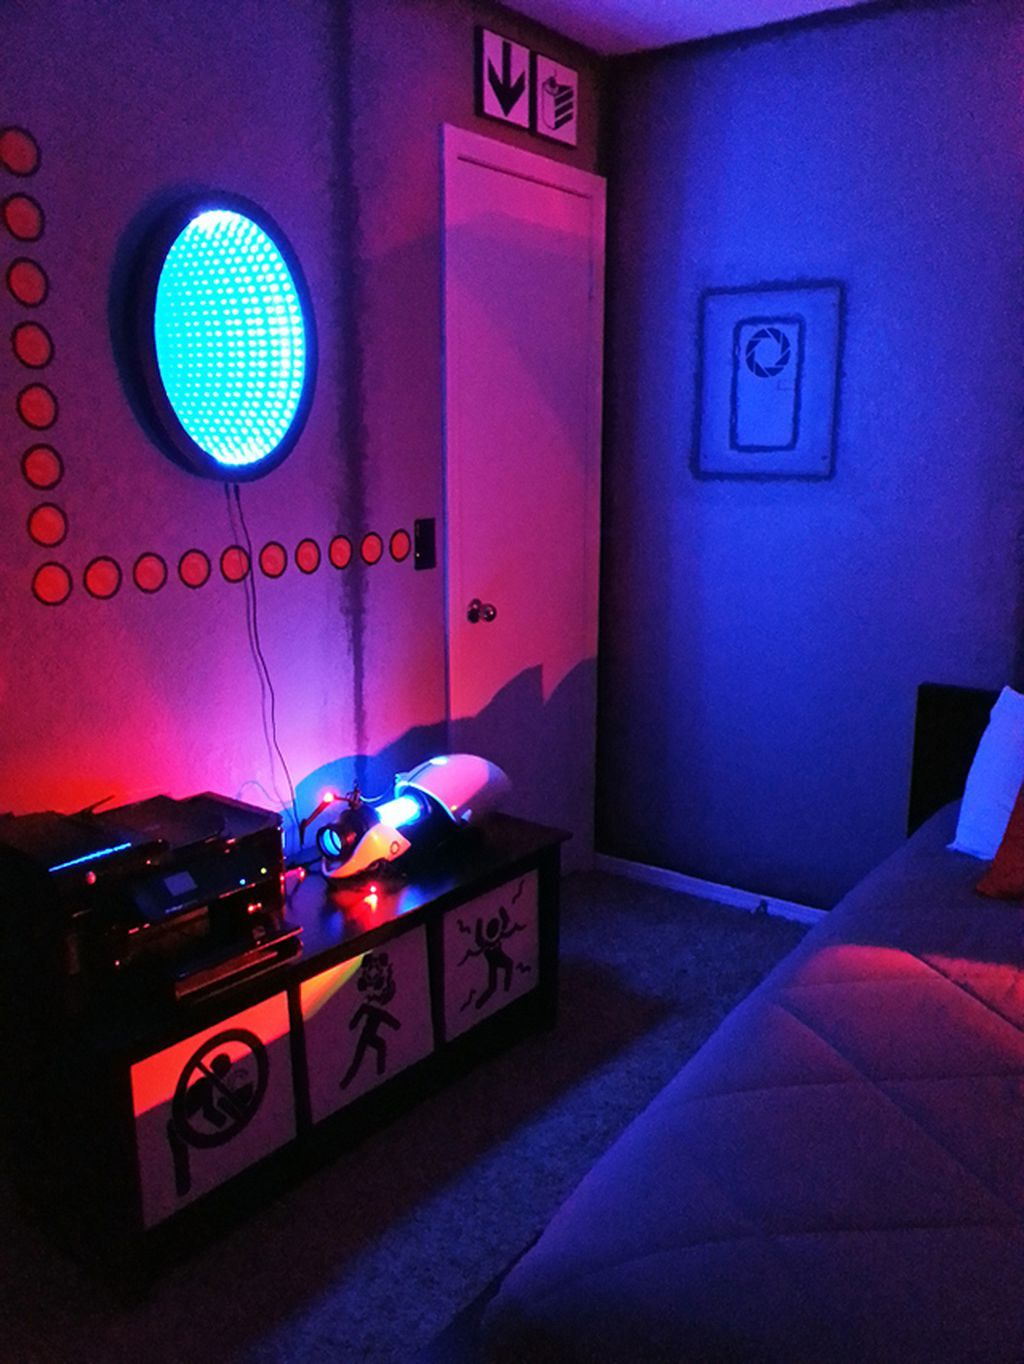 40 awesome gamer room decoration ideas other bedroom themes rh pinterest com